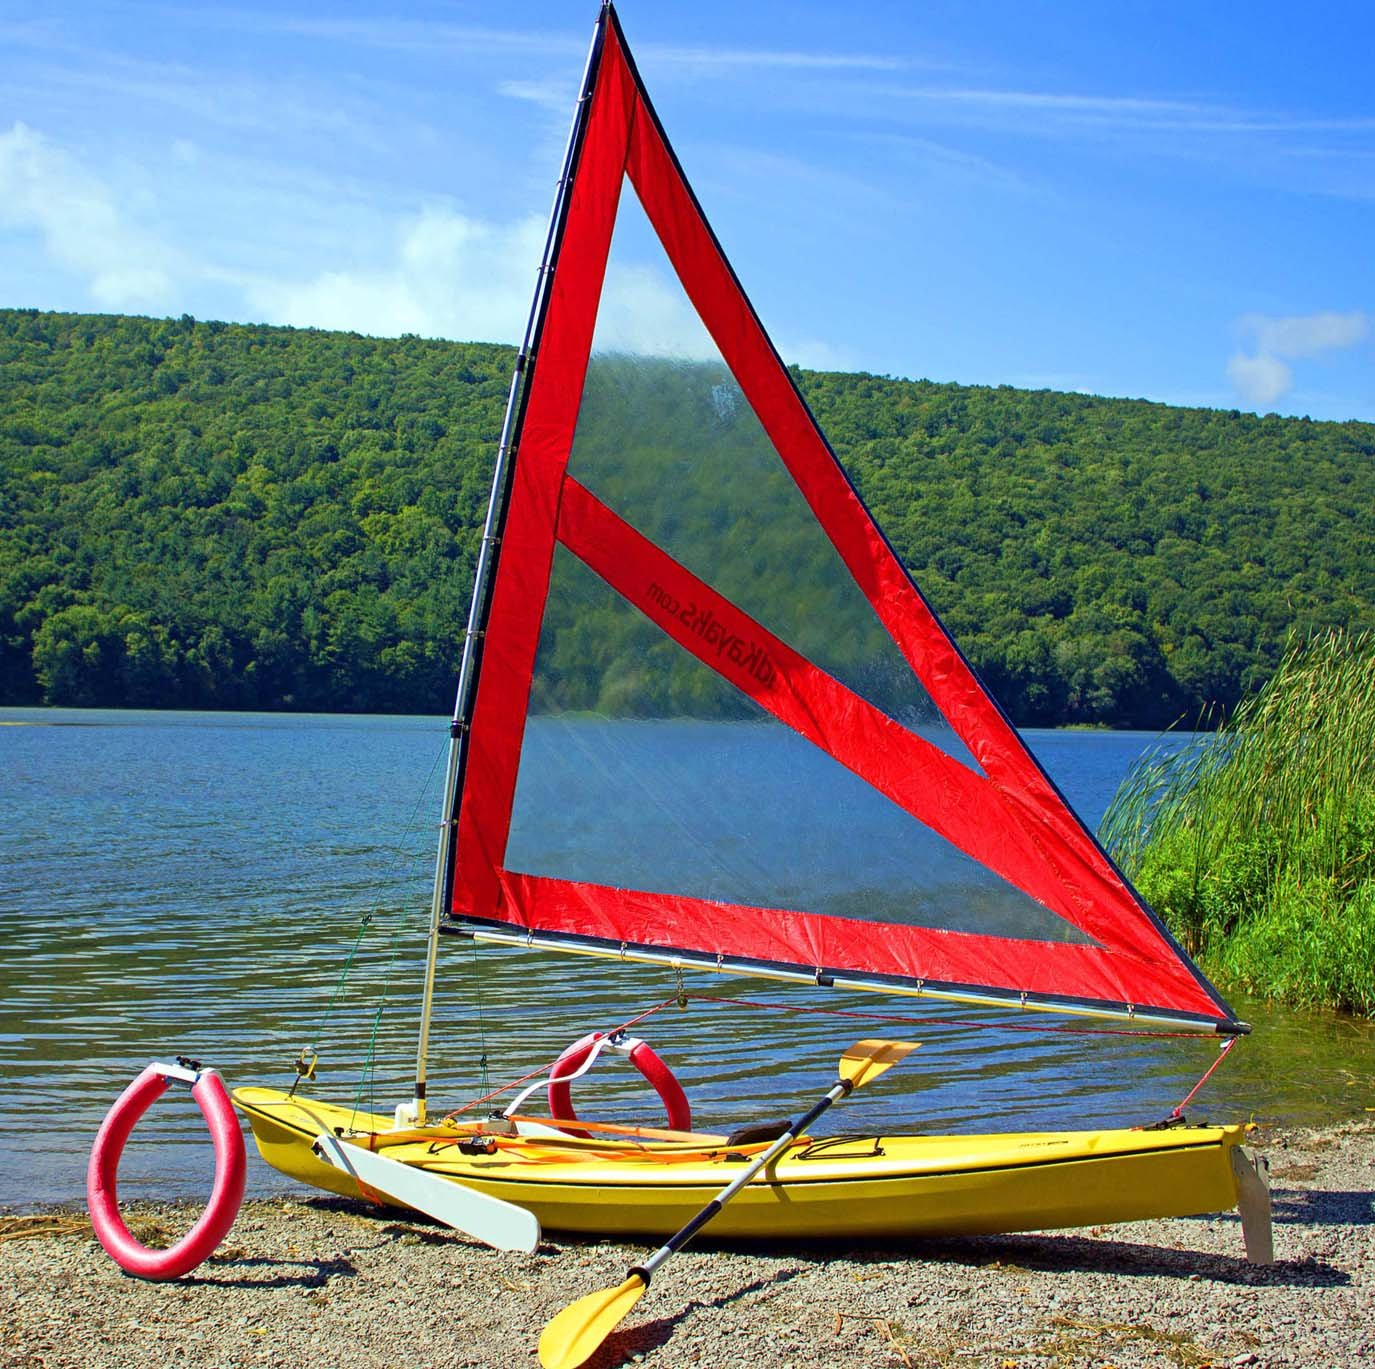 Serenity Upwind Kayak Sail and Canoe Sail Kit (Red). Complete with Telescoping Mast, Boom, Outriggers, Lee Boards, All Rigging Included! Compact, Portable, Easy to Set up - Makes a great gift !